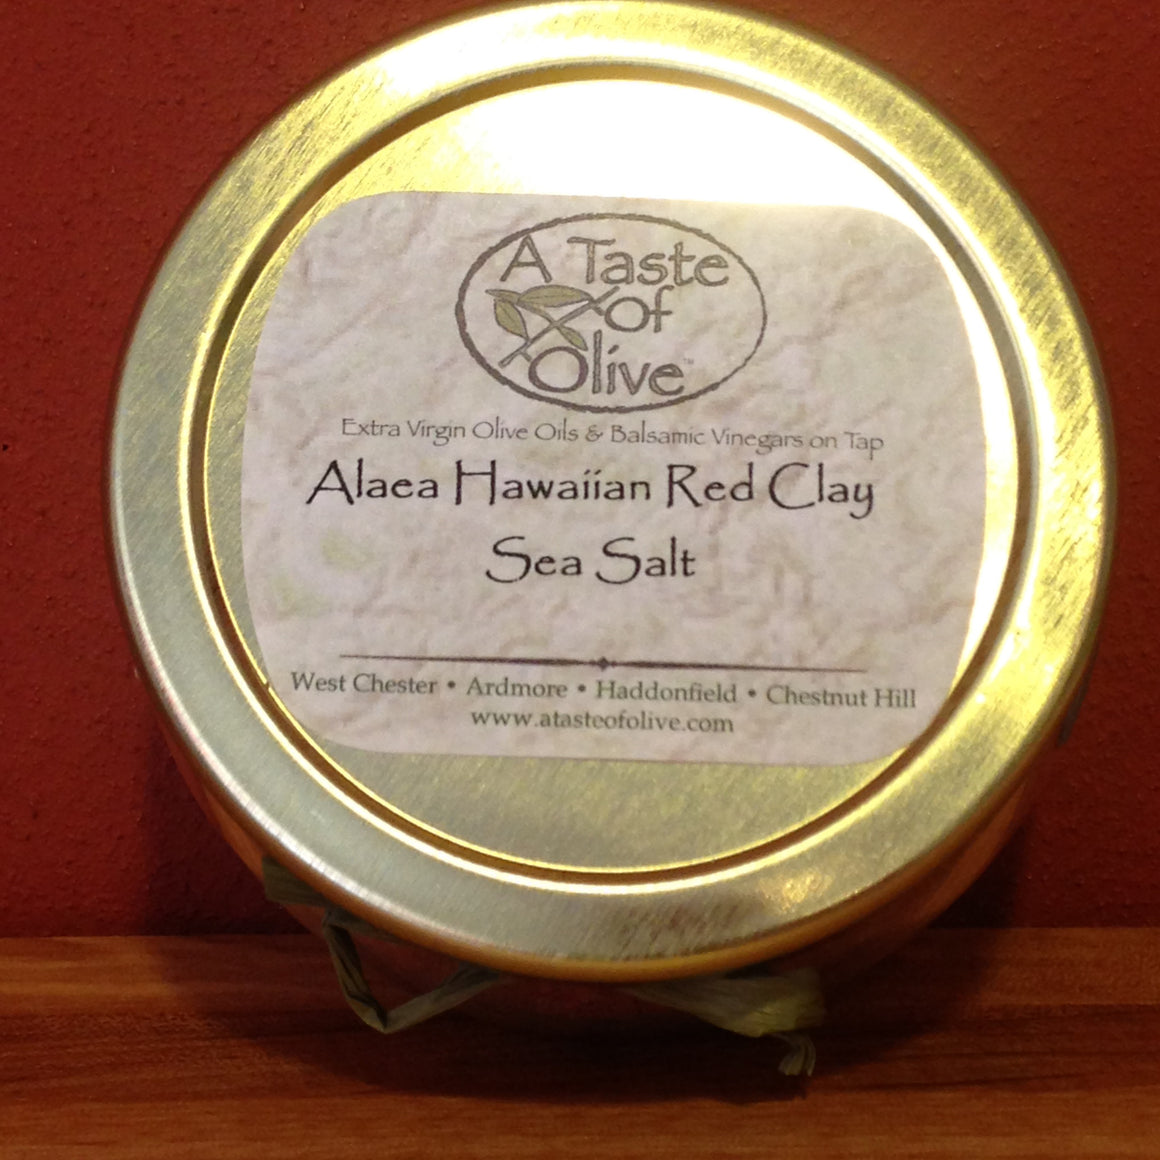 Alaea Hawaiian Red Clay Sea Salt - A Taste of Olive